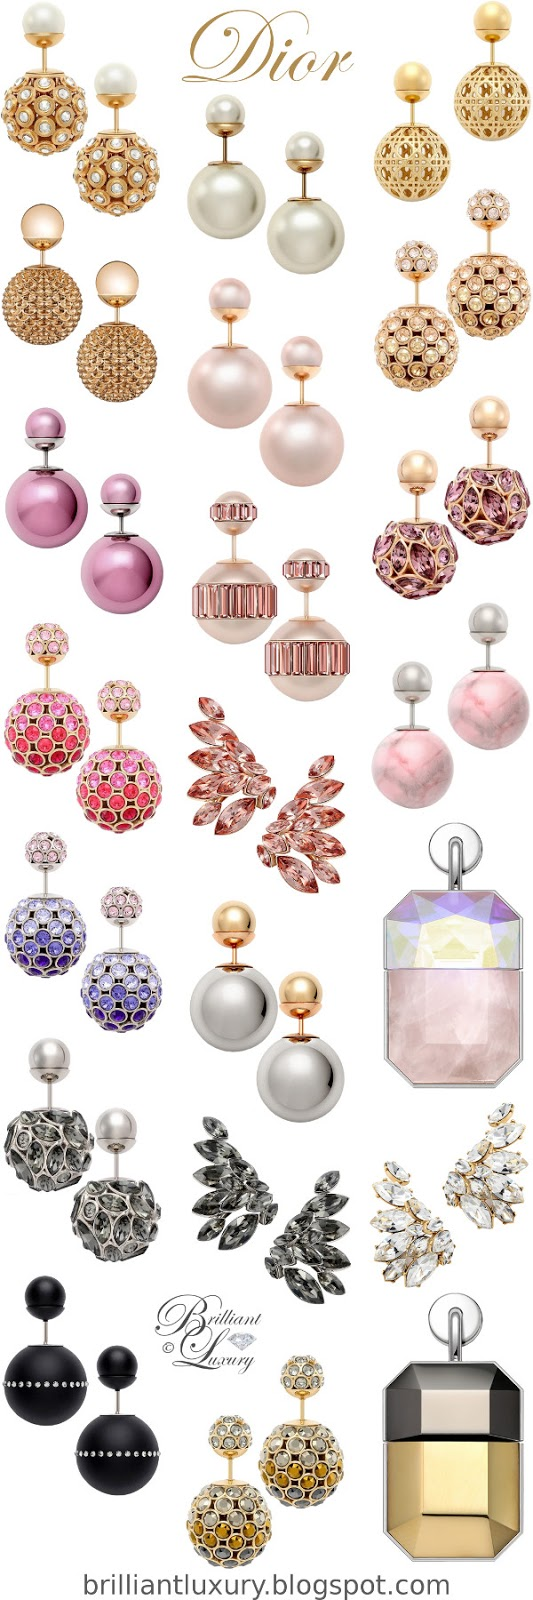 Brilliant Luxury ♦ Dior Jewelry Collection 2015 ~ Part II